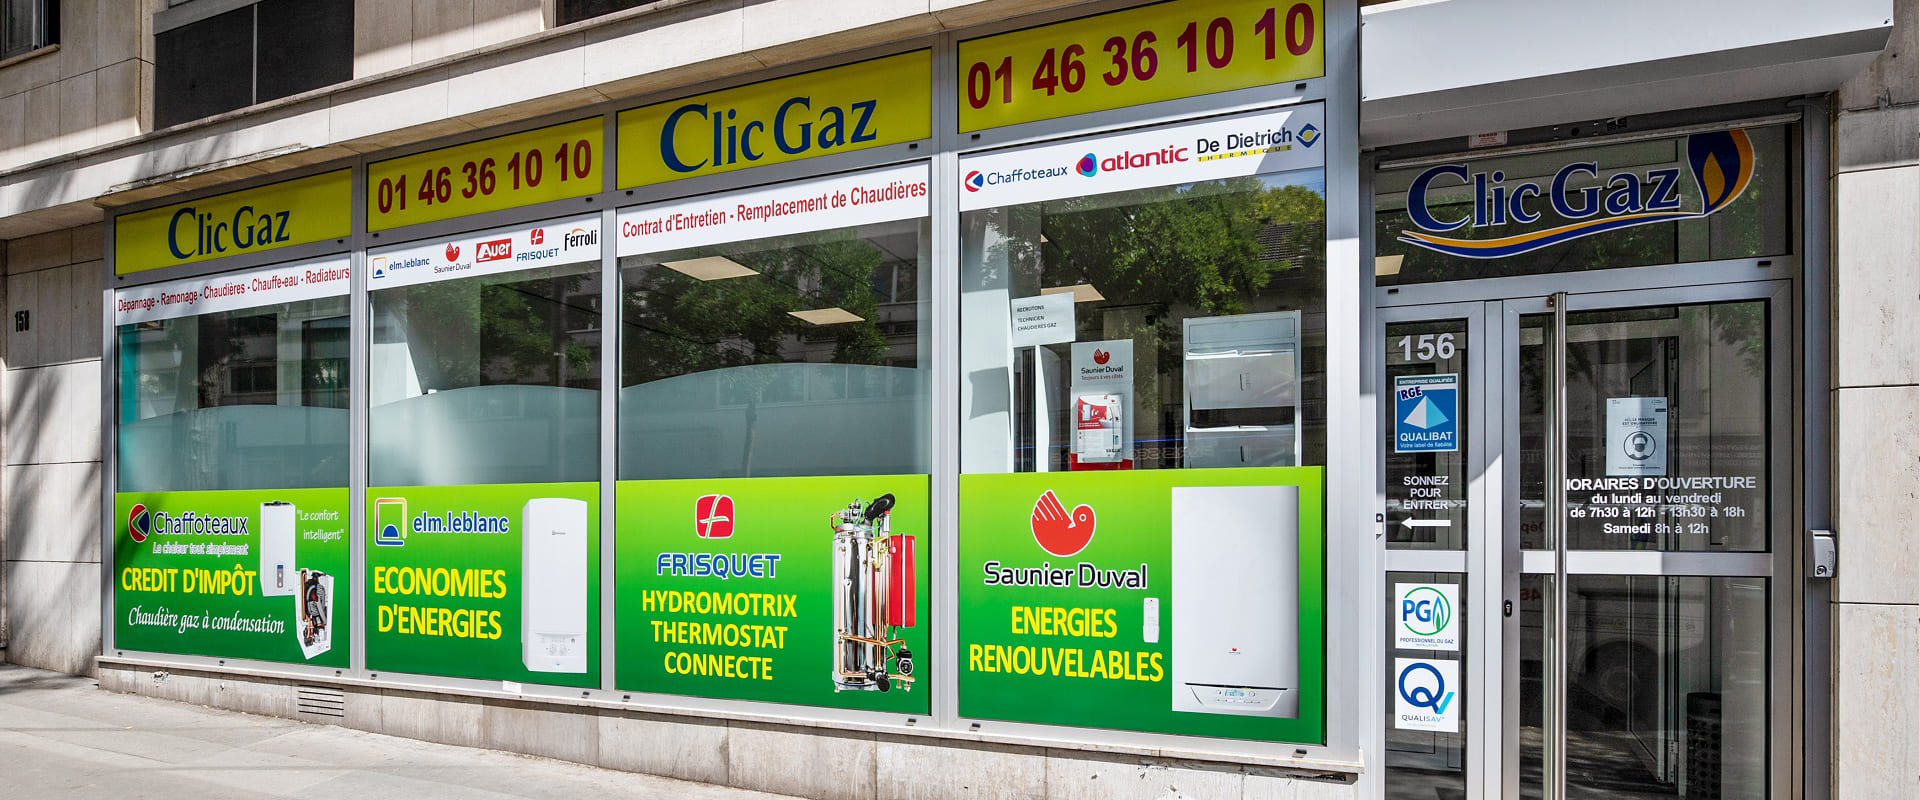 Visuel slider devanture magasin - ramonage de chaudiére gaz paris 20